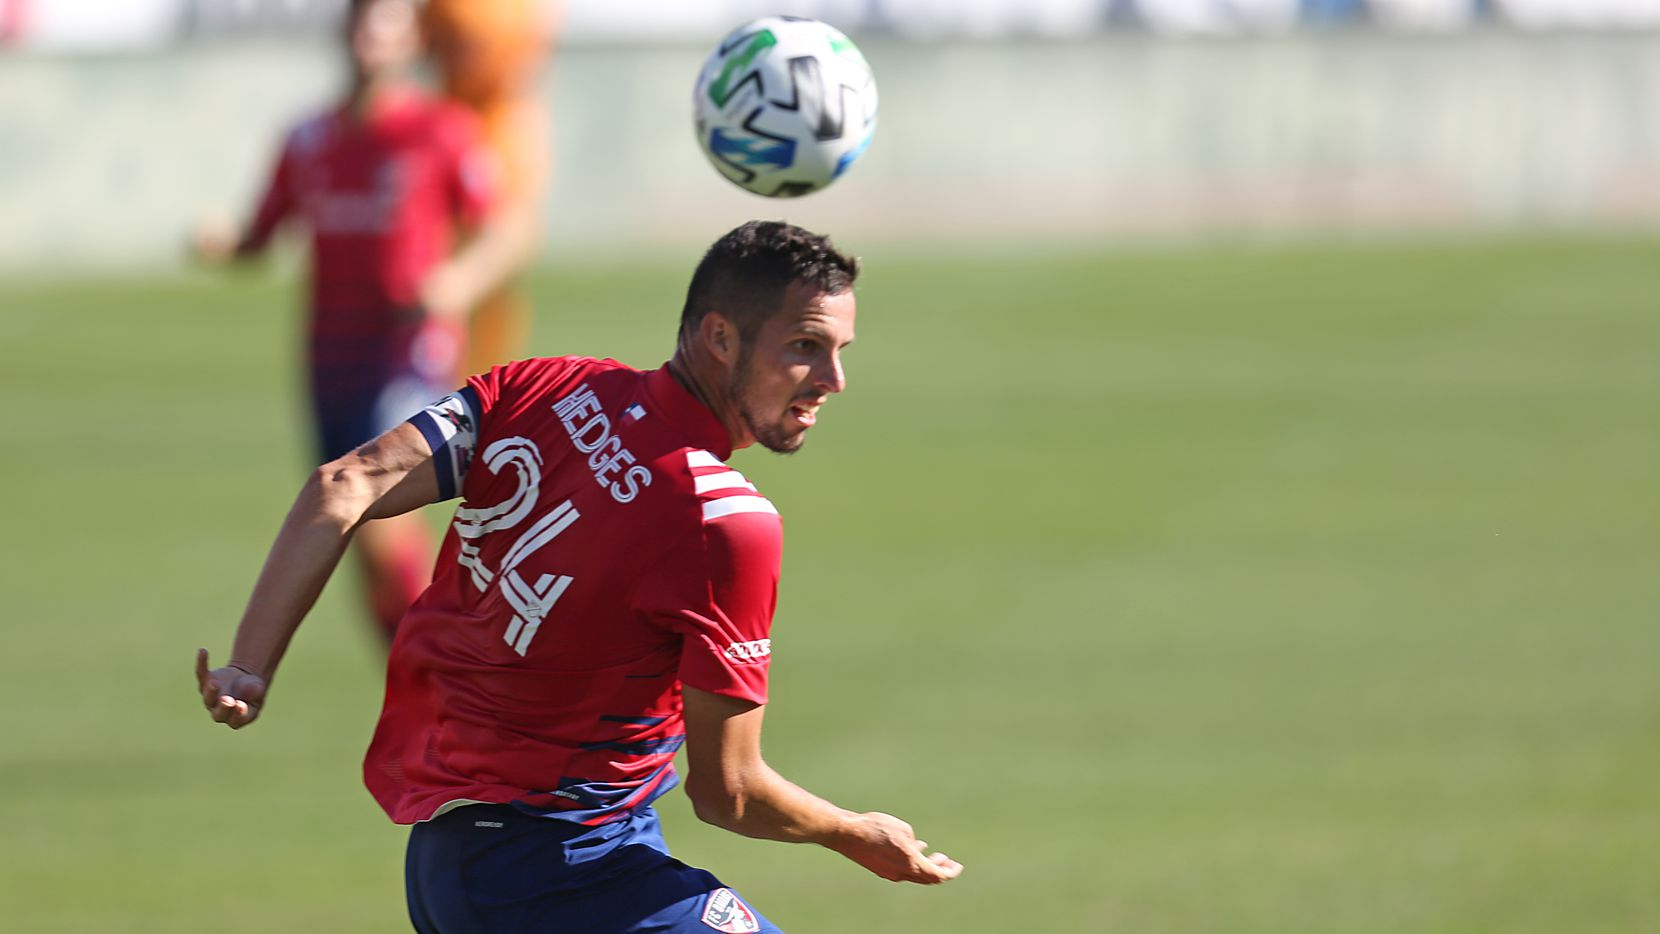 FRISCO, TX - OCTOBER 31: Matt Hedges #24 of FC Dallas head the ball during the MLS game between Houston Dynamo and FC Dallas at Toyota Stadium on October 31, 2020 in Frisco, Texas.